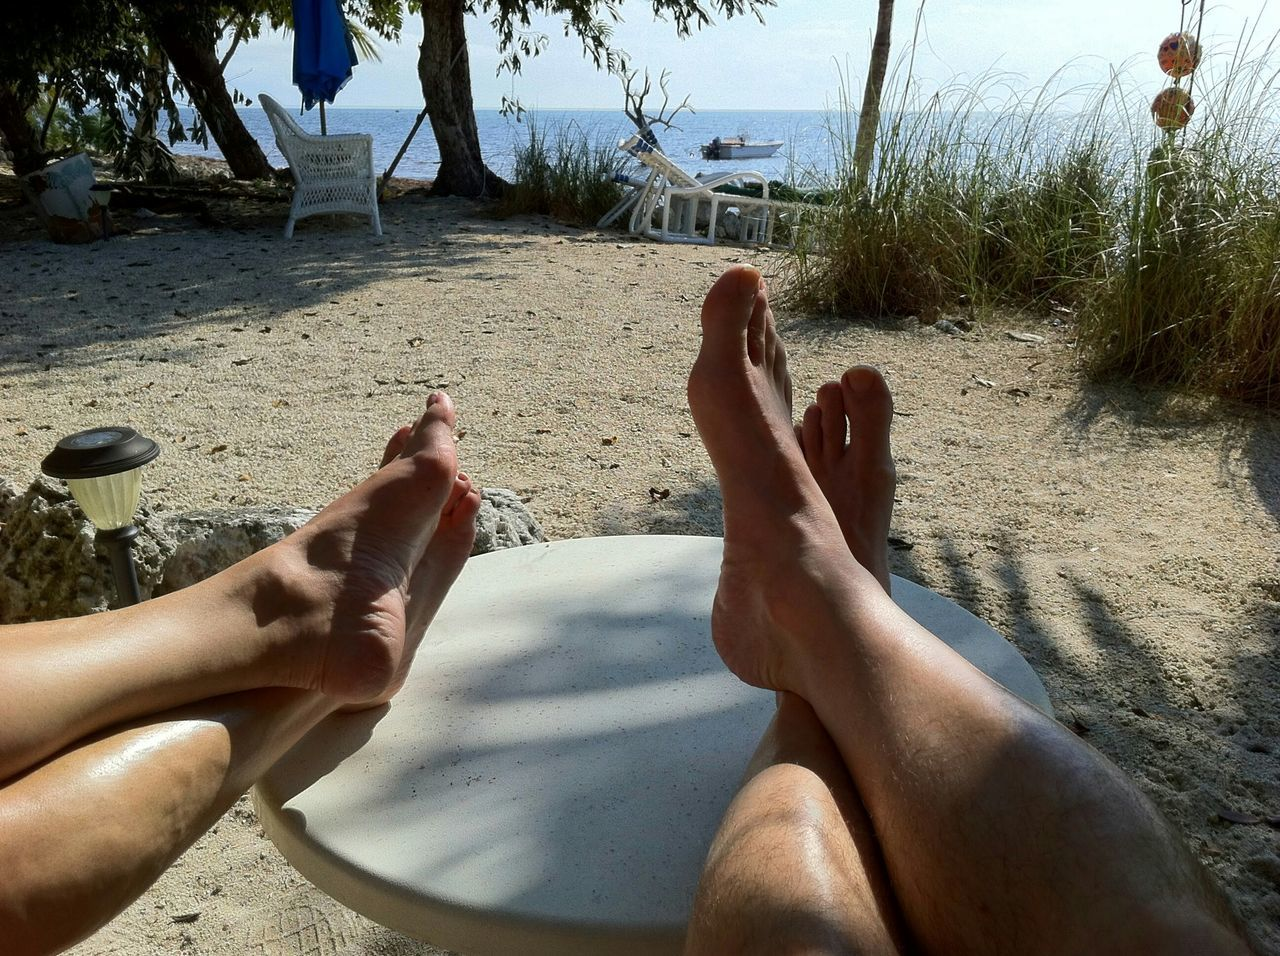 barefoot, human leg, low section, human foot, human body part, real people, beach, personal perspective, sand, leisure activity, day, sunlight, outdoors, togetherness, vacations, two people, relaxation, shadow, men, lifestyles, women, tree, close-up, nature, adult, people